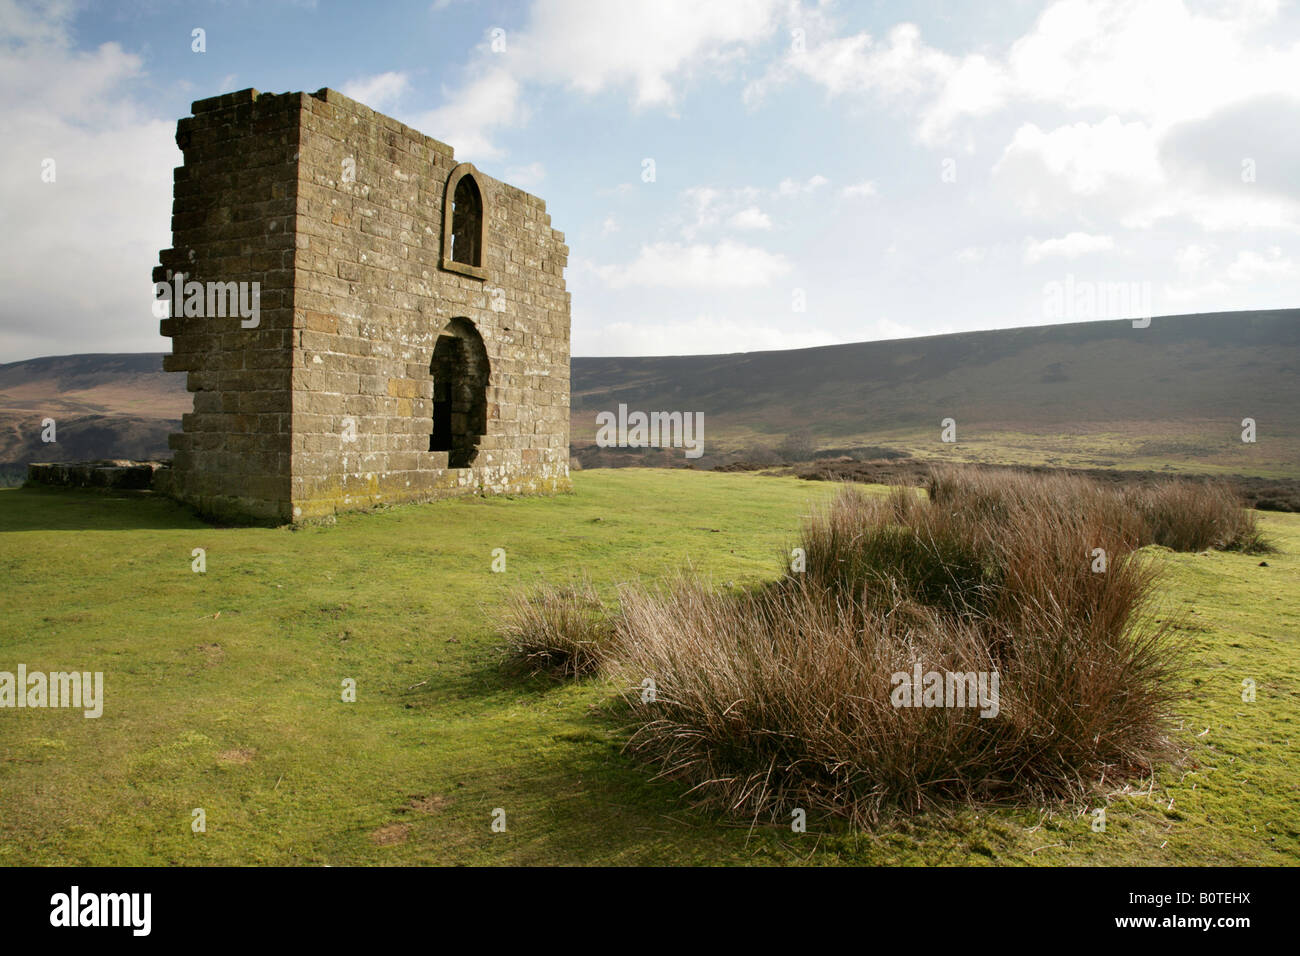 Skelton Tower, North Yorkshire Moors, Great Britain. - Stock Image